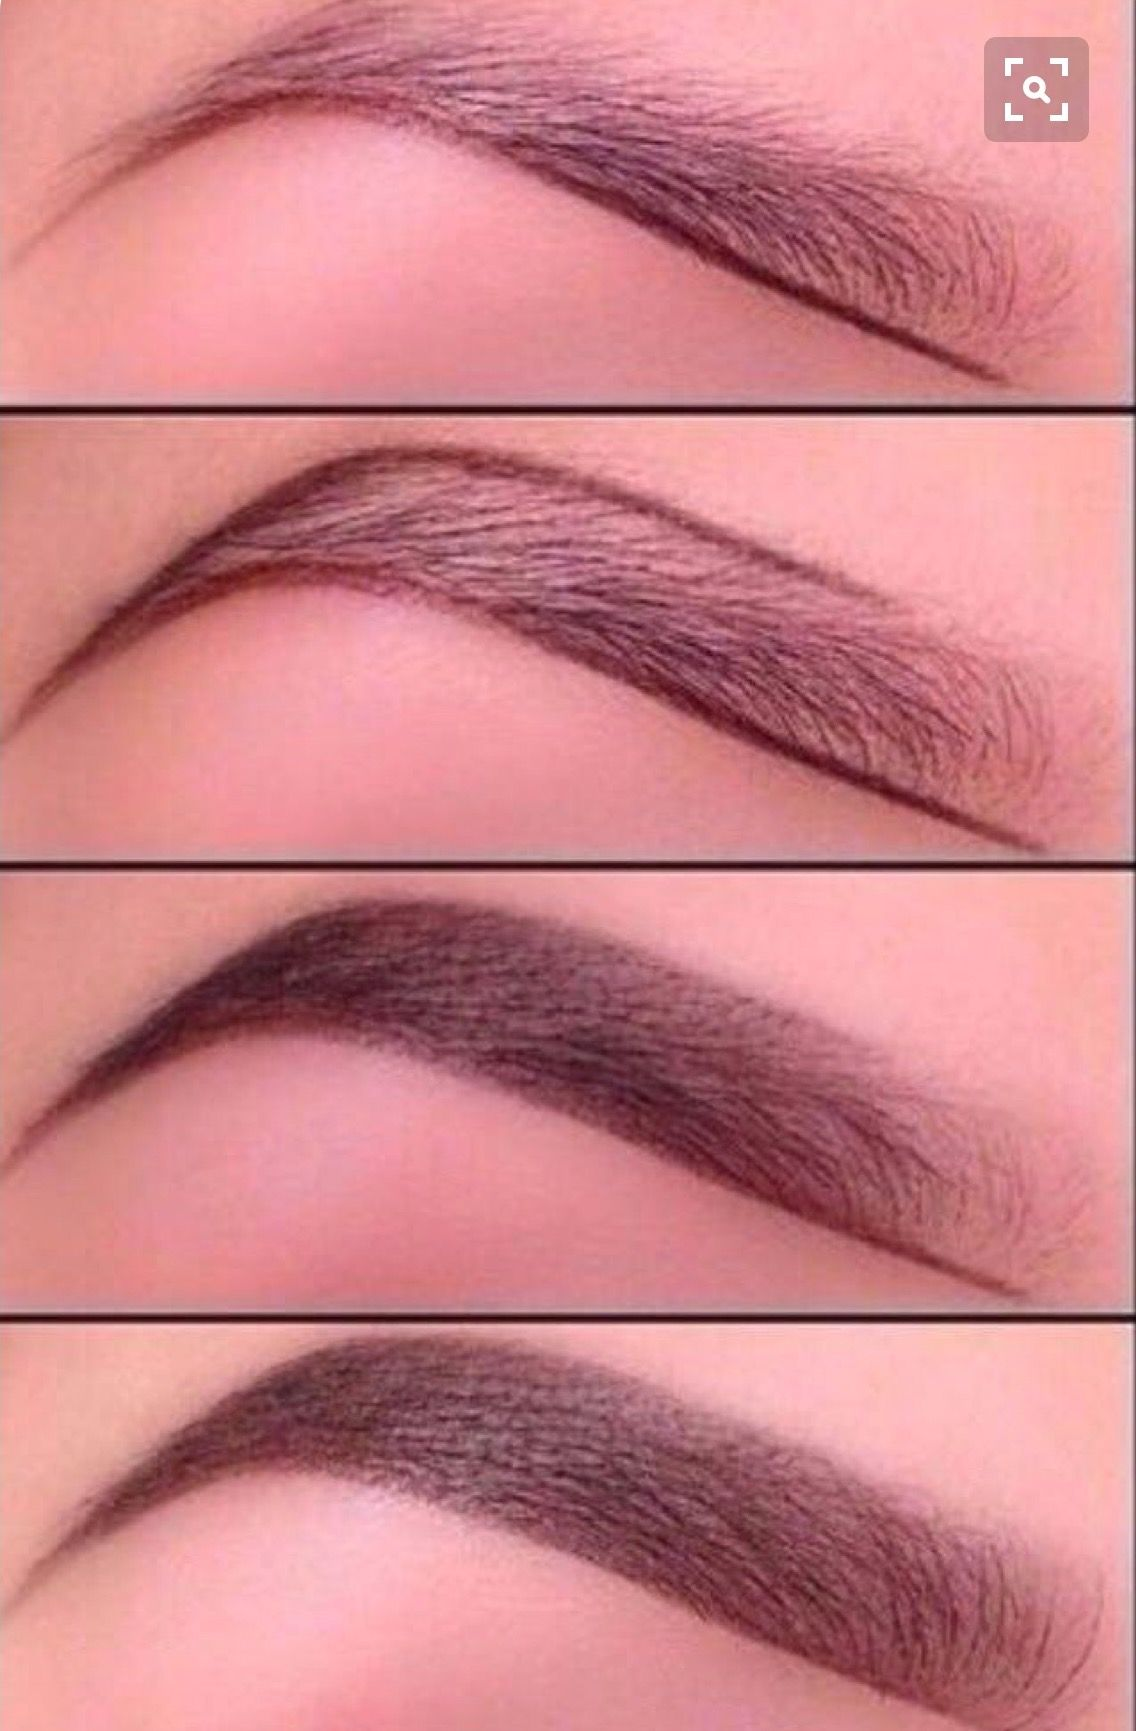 Pin by face painting on face paint tutorial pinterest make up eyebrow hacks tips tricks how to get perfect eyebrows guide to shaping brows baditri Images